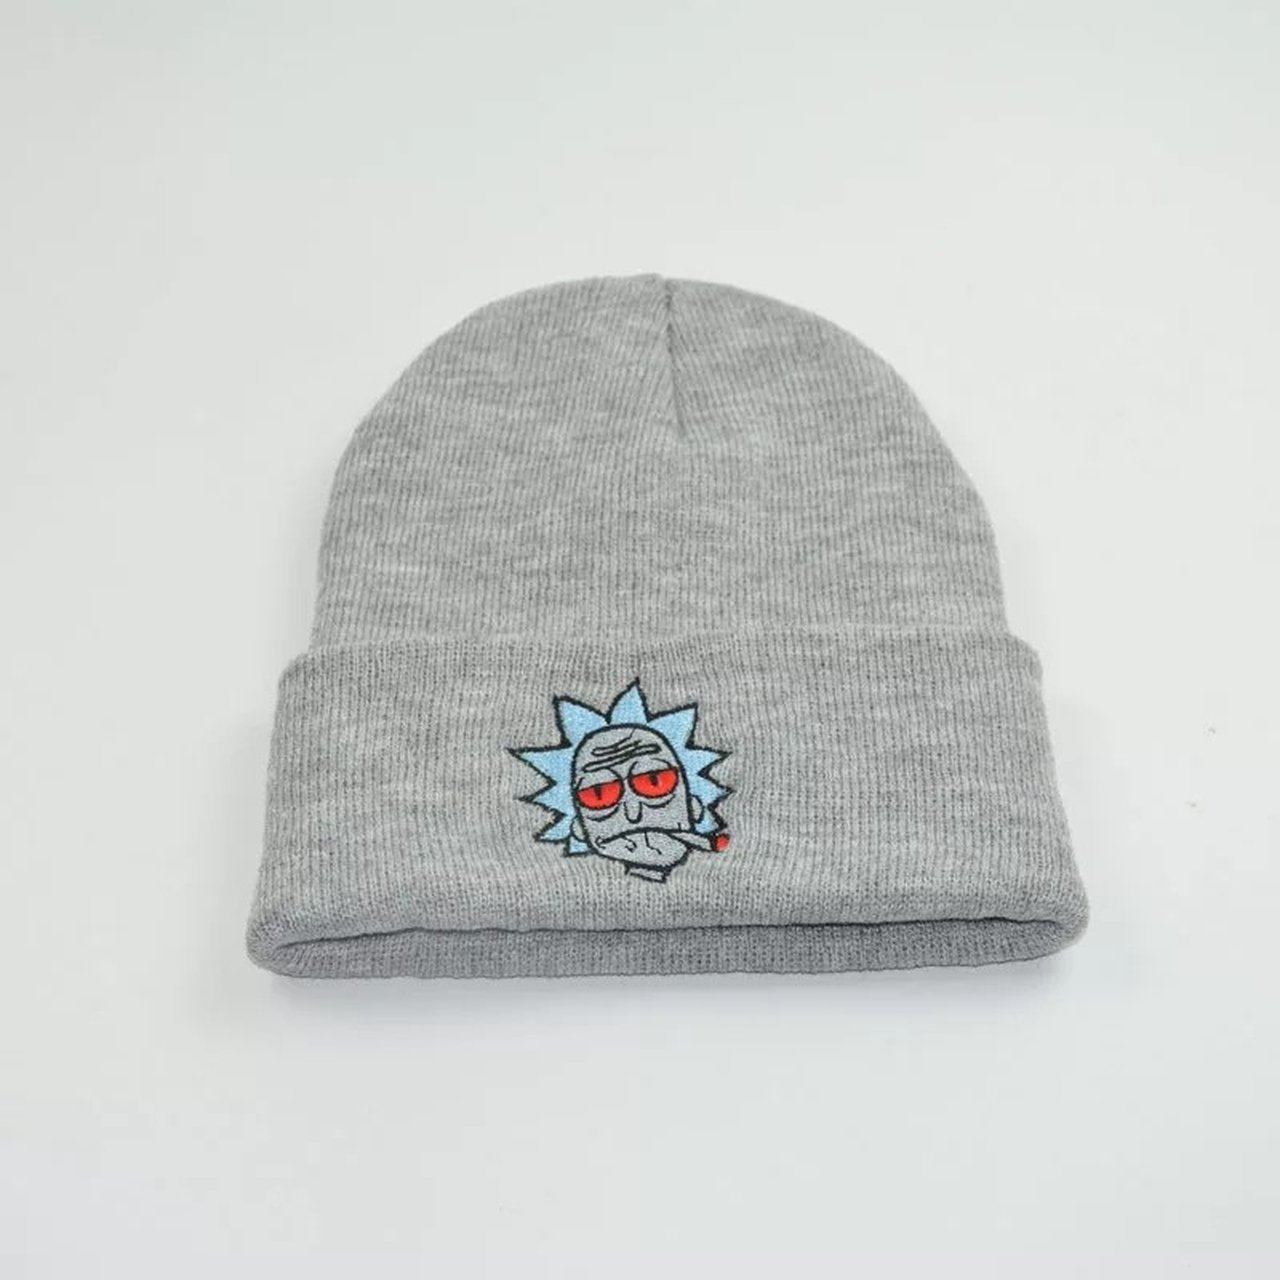 Stoned Rick beanie in grey Rick and Morty adult swim rick - Depop 8096ae267413